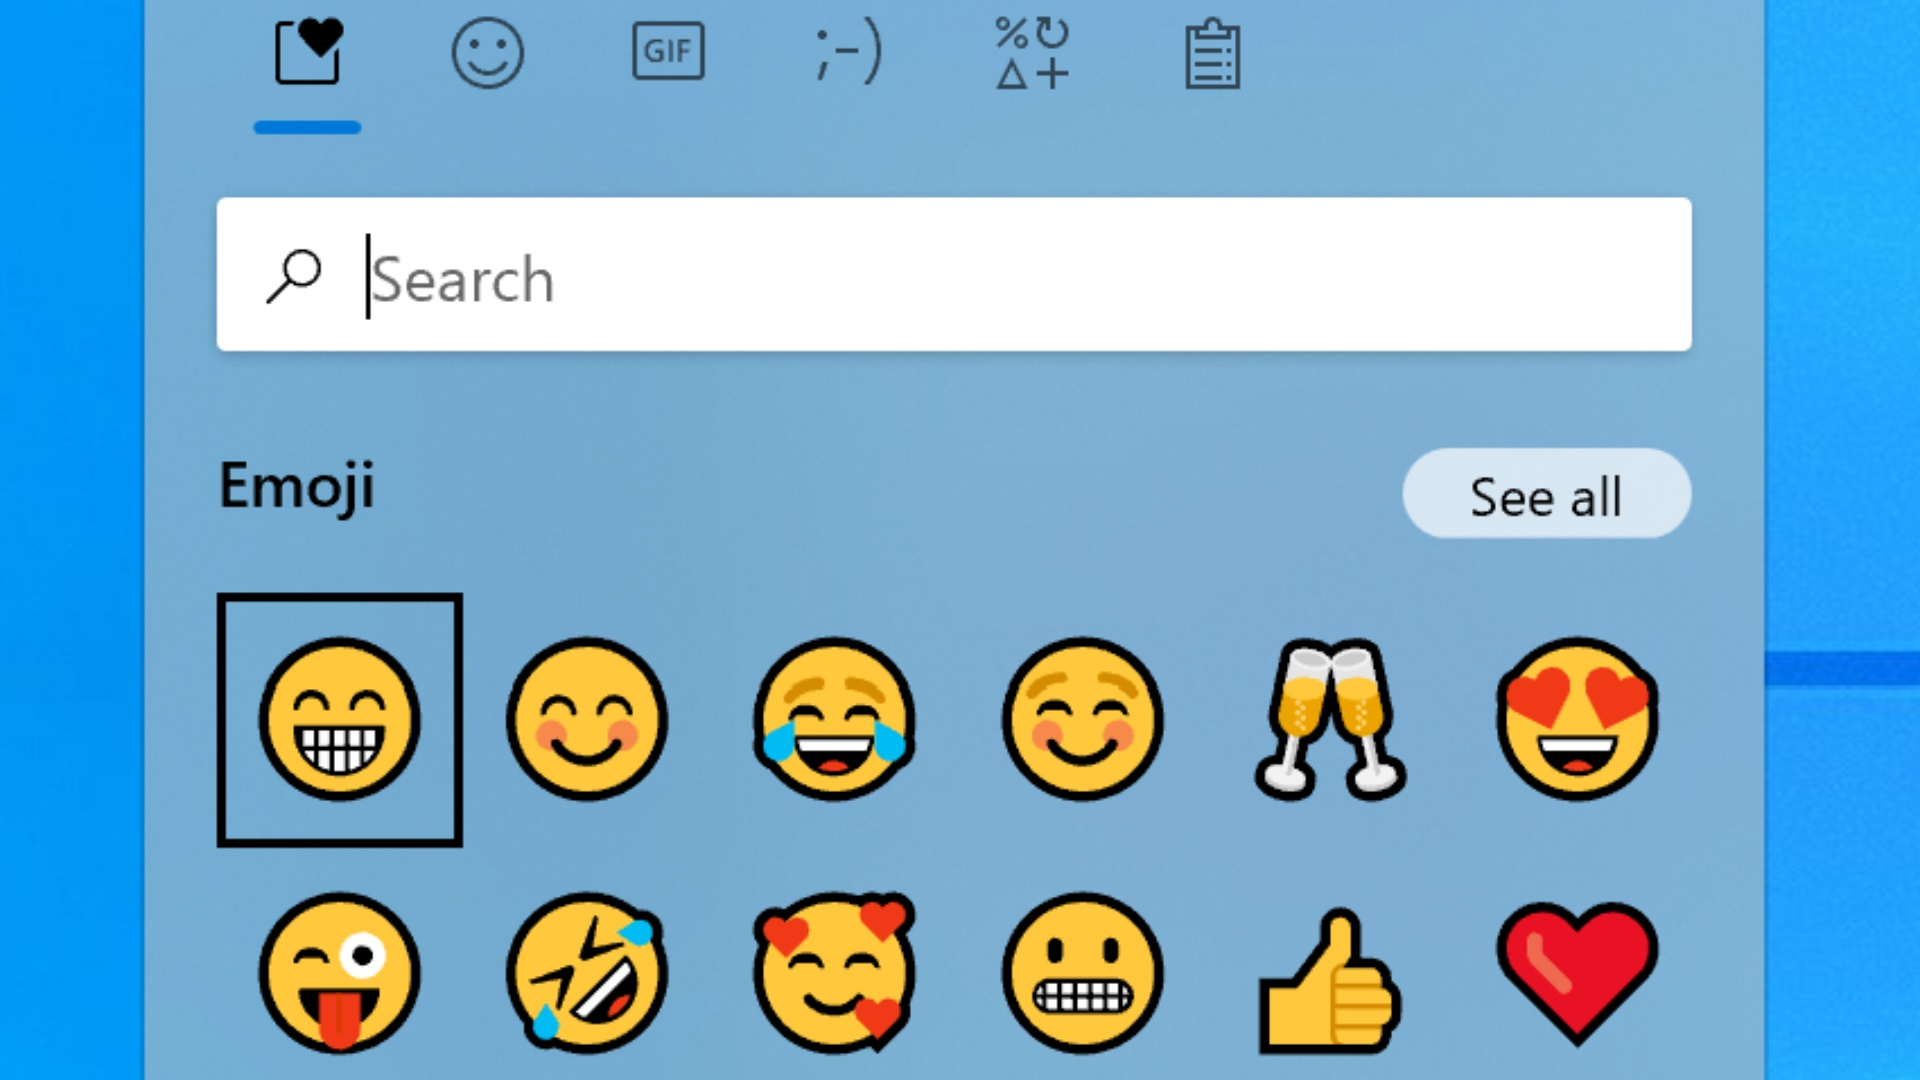 Windows 10 gets new emoji features, improved voice typing